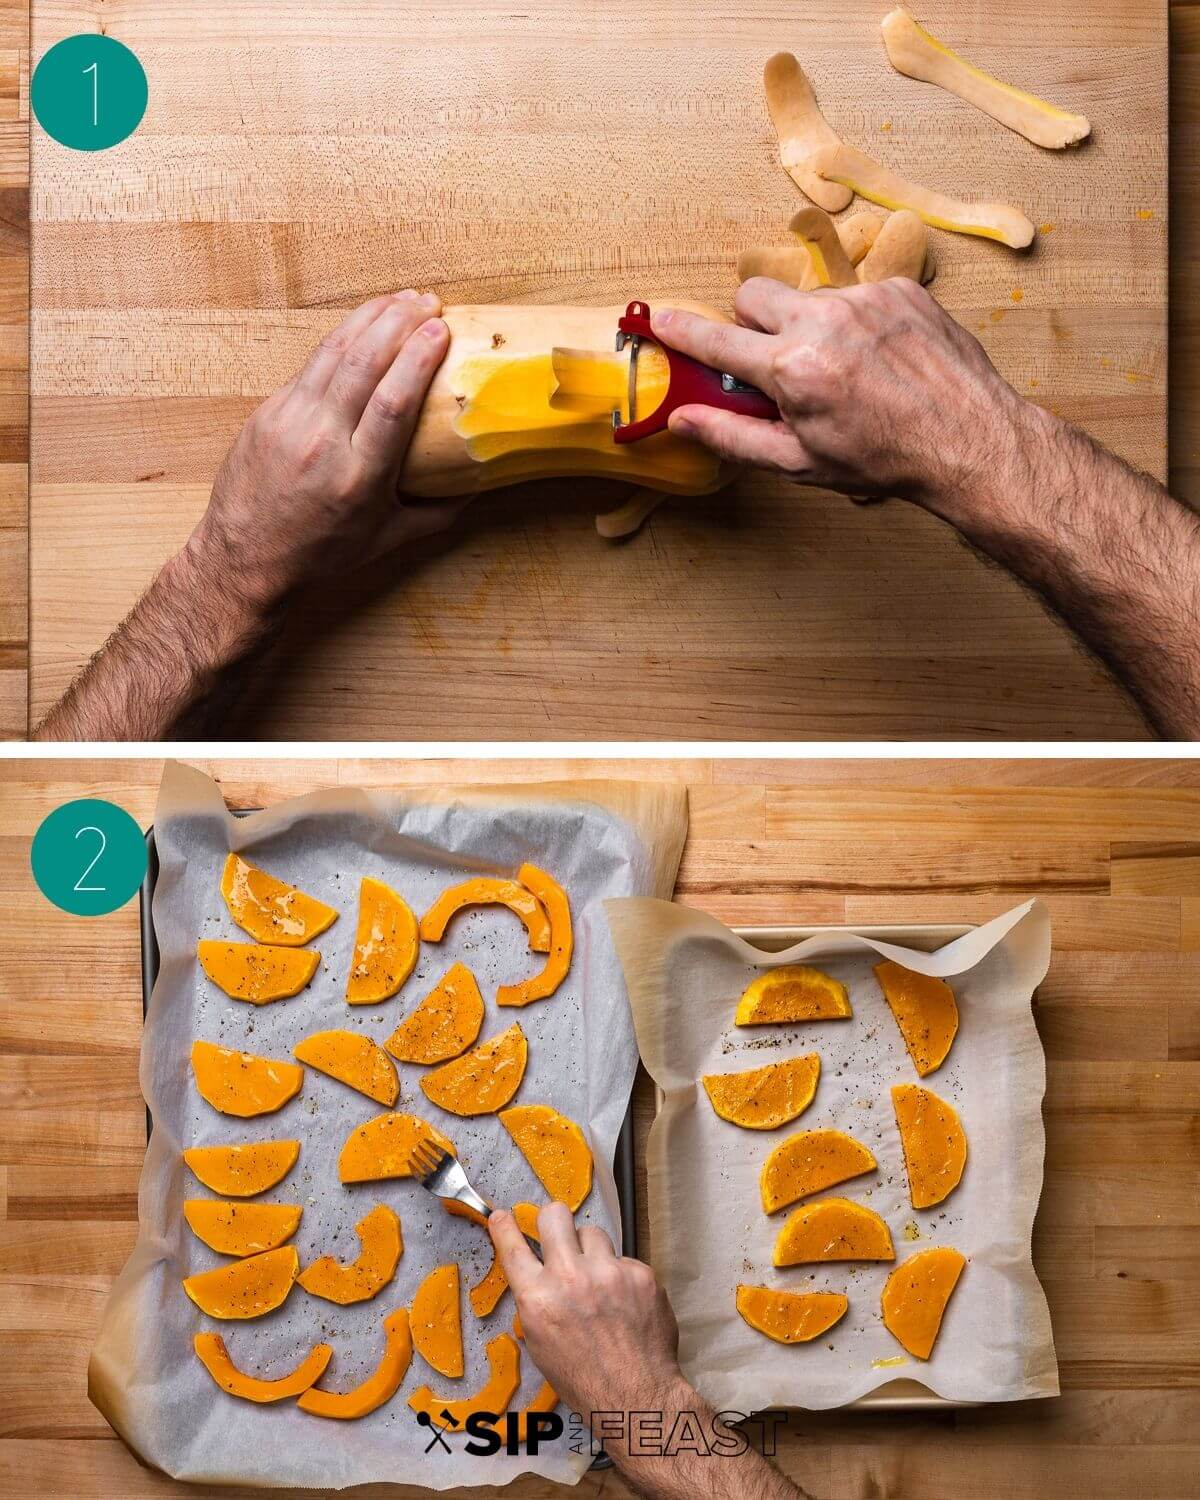 Butternut squash parmigiana recipe process shot collage group number one.